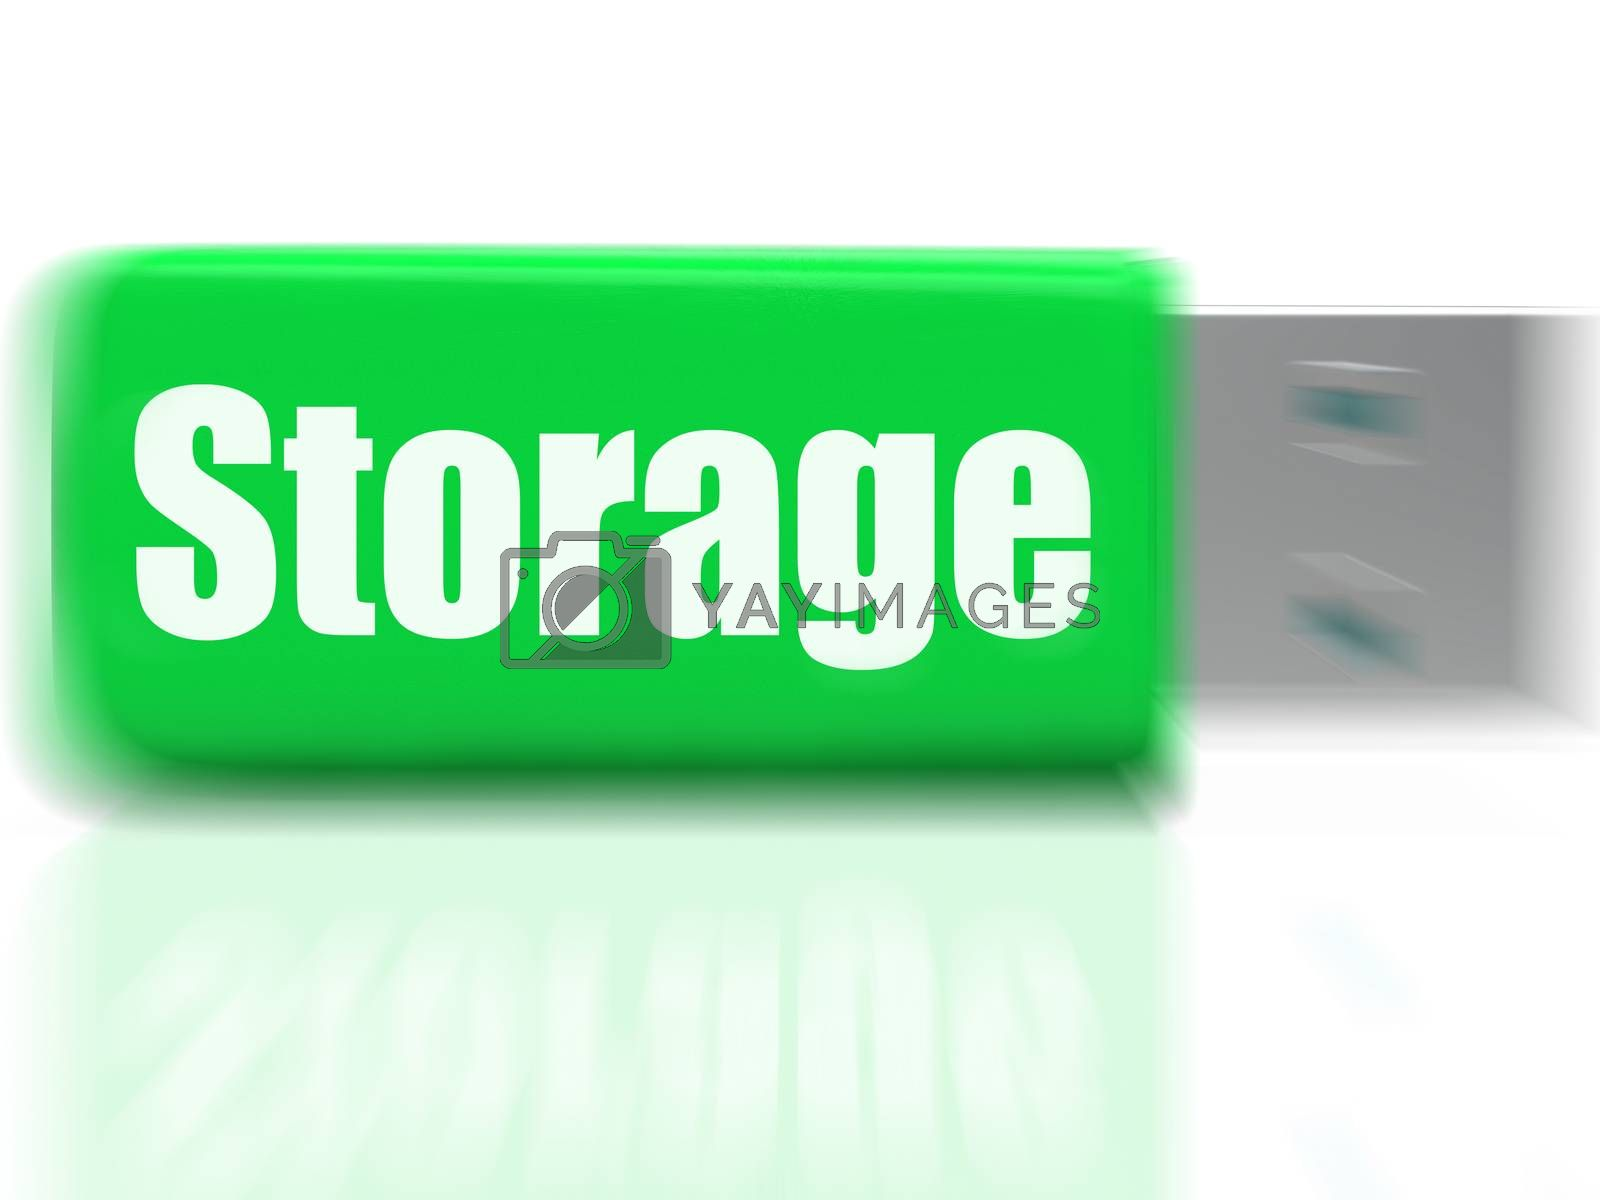 Storage USB drive Shows Data Backup Or Warehousing by stuartmiles